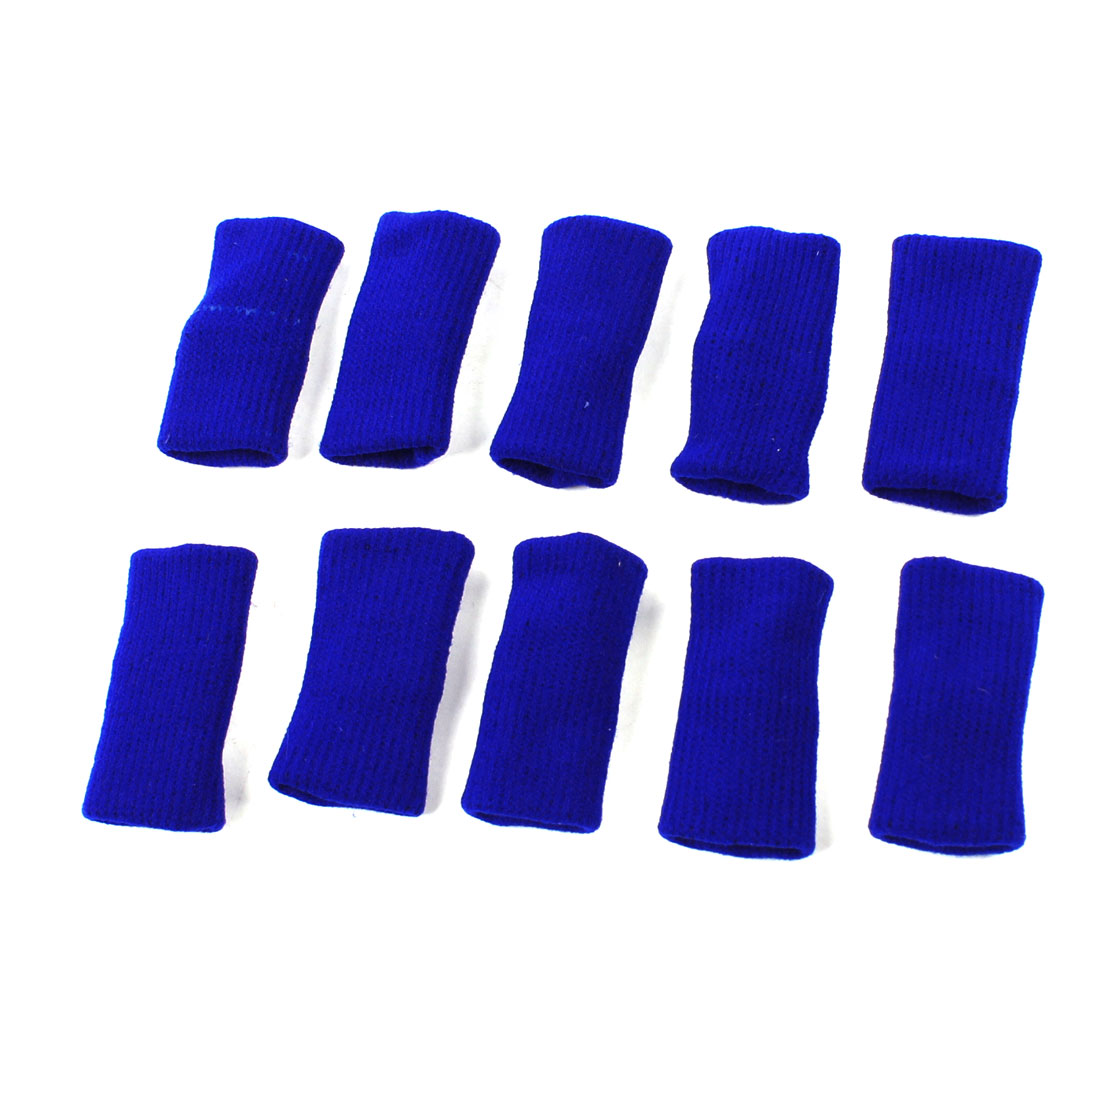 10 Pcs Blue Stretch Fingers Sleeve Cover Band for Basketball Volleyball